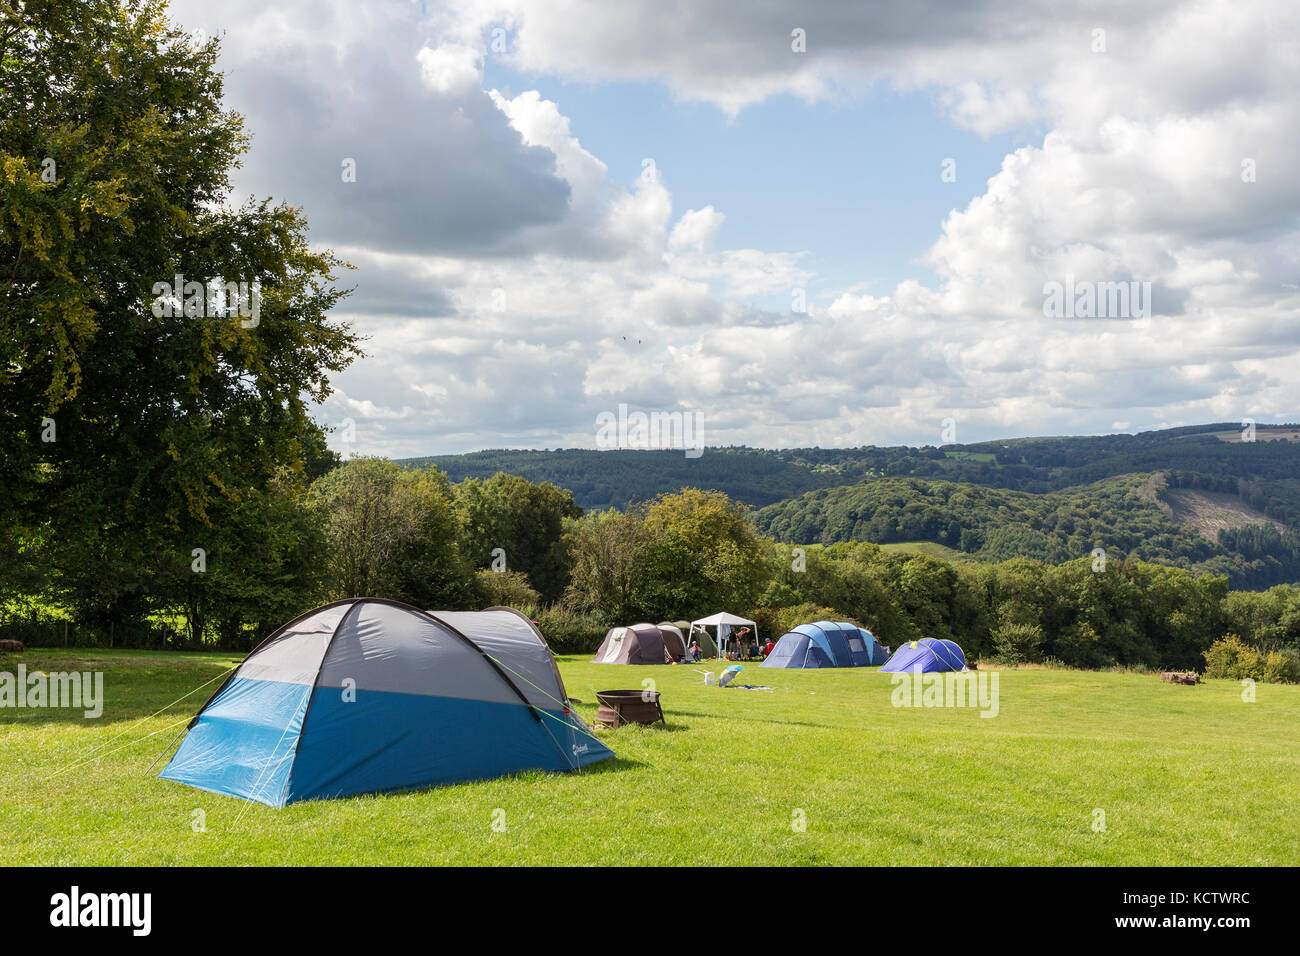 Tents on campsite, Wales, UK - Stock Image